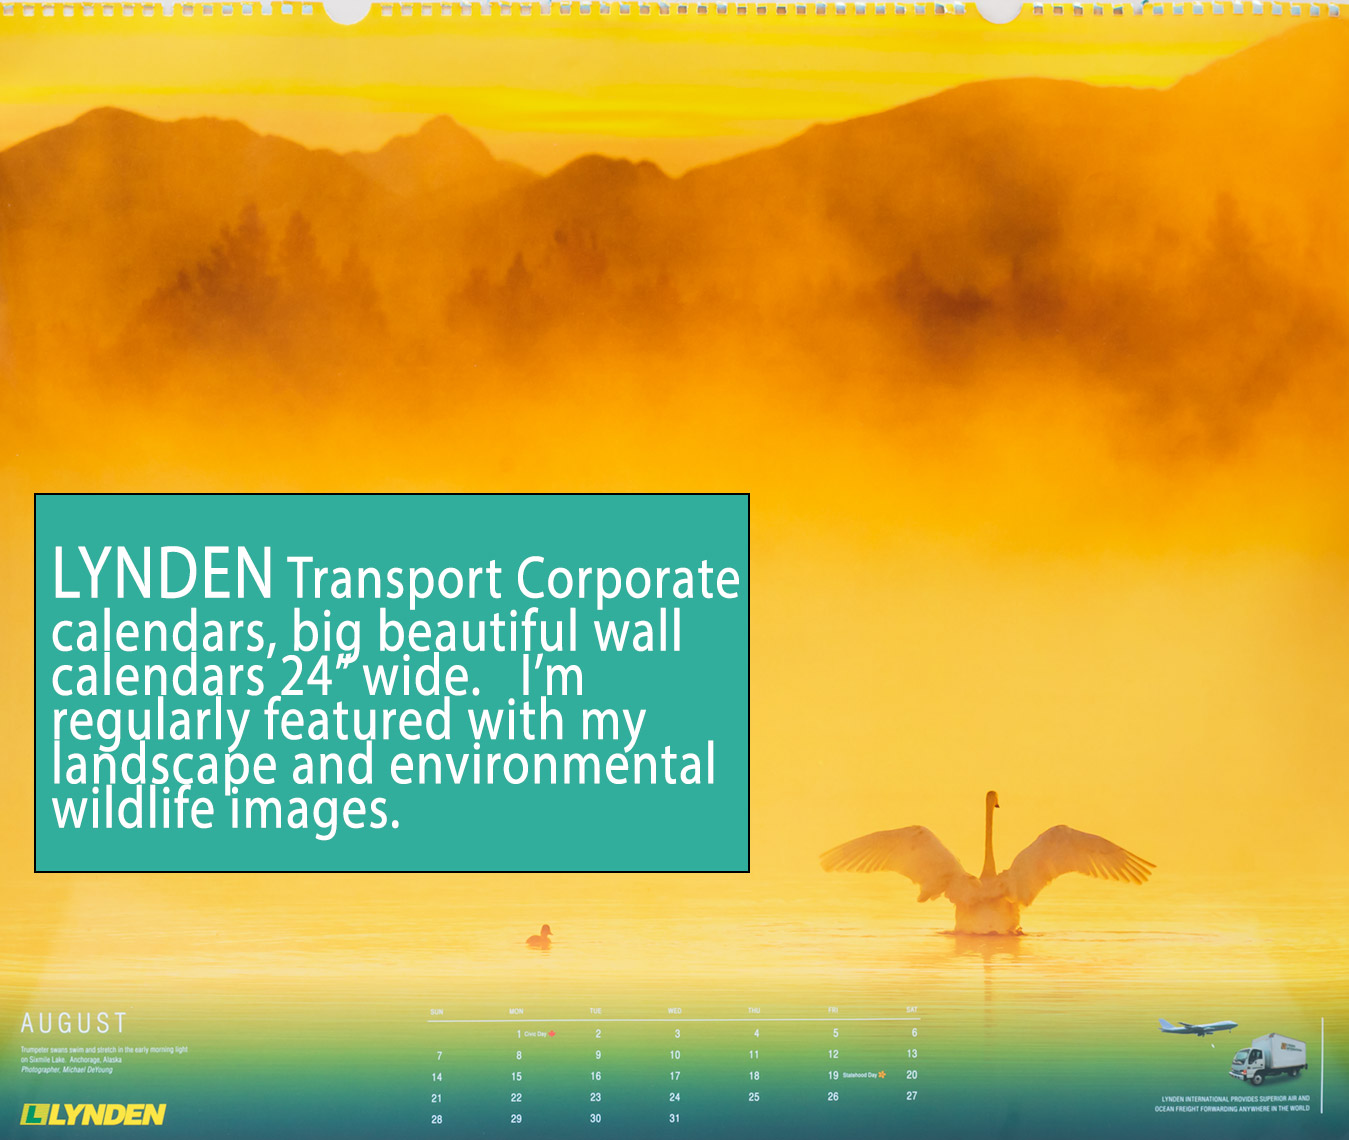 Lynden-Transport-Corporate-Calendar